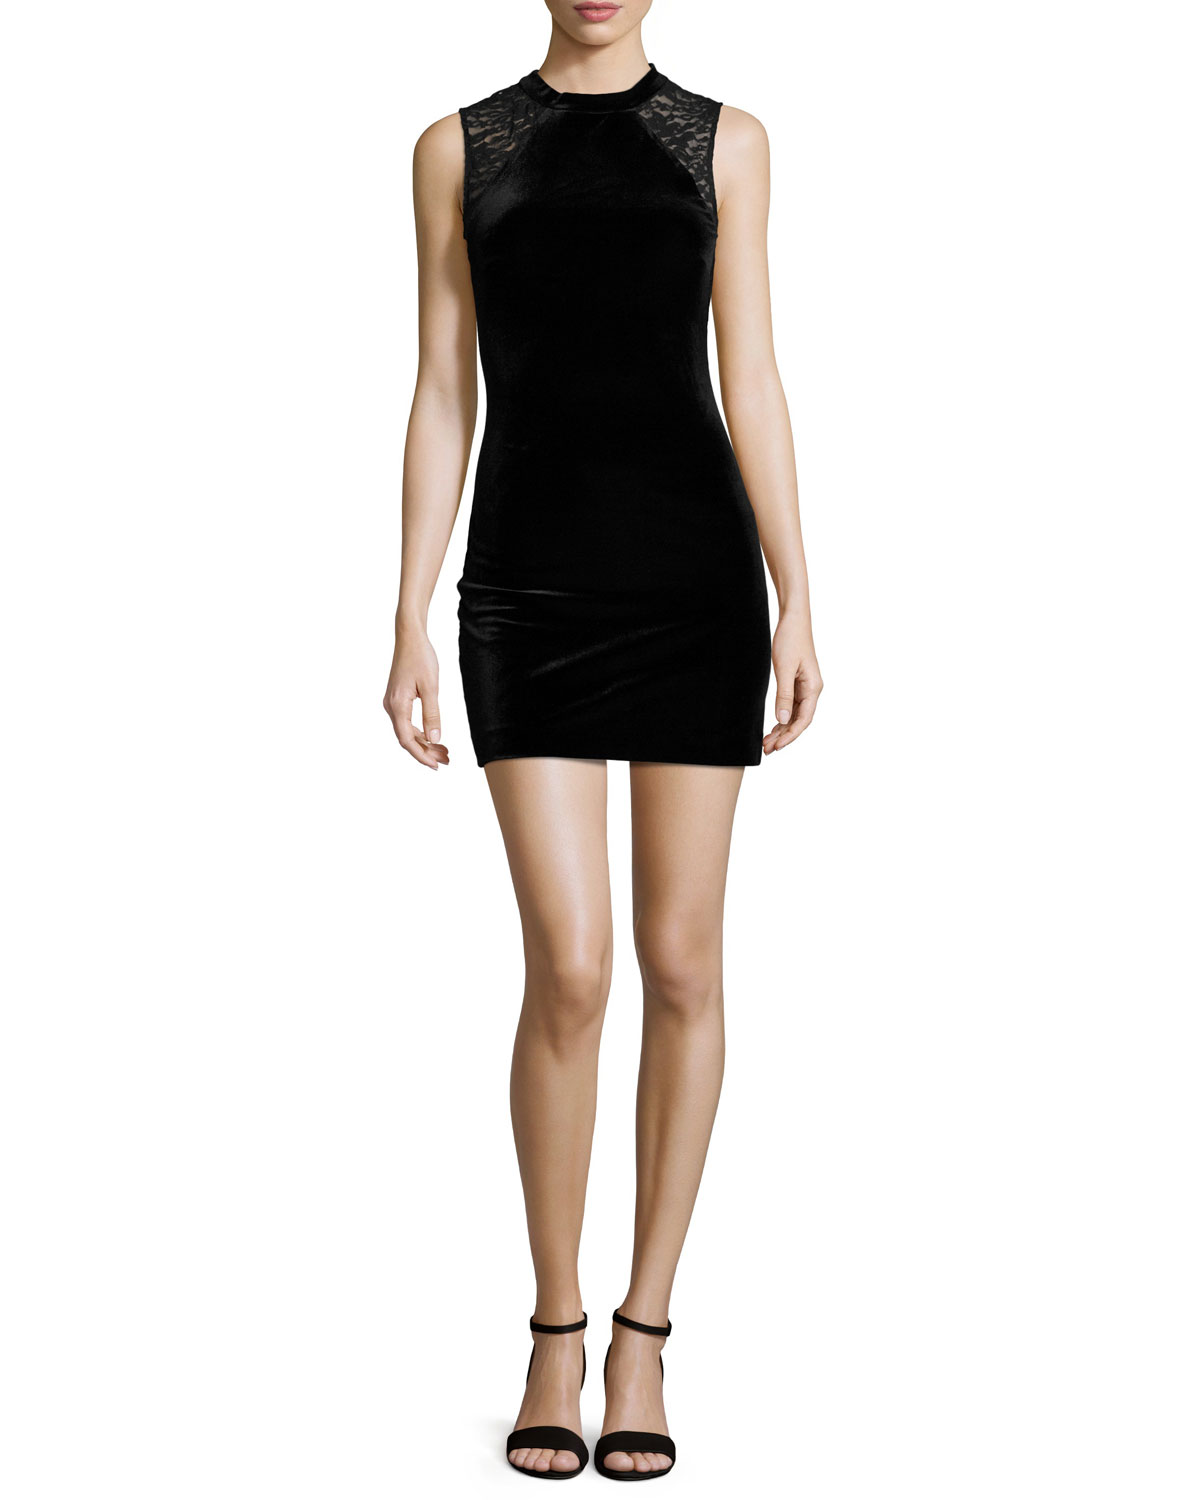 Viven Velvet Dress w/Lace Trim, Black